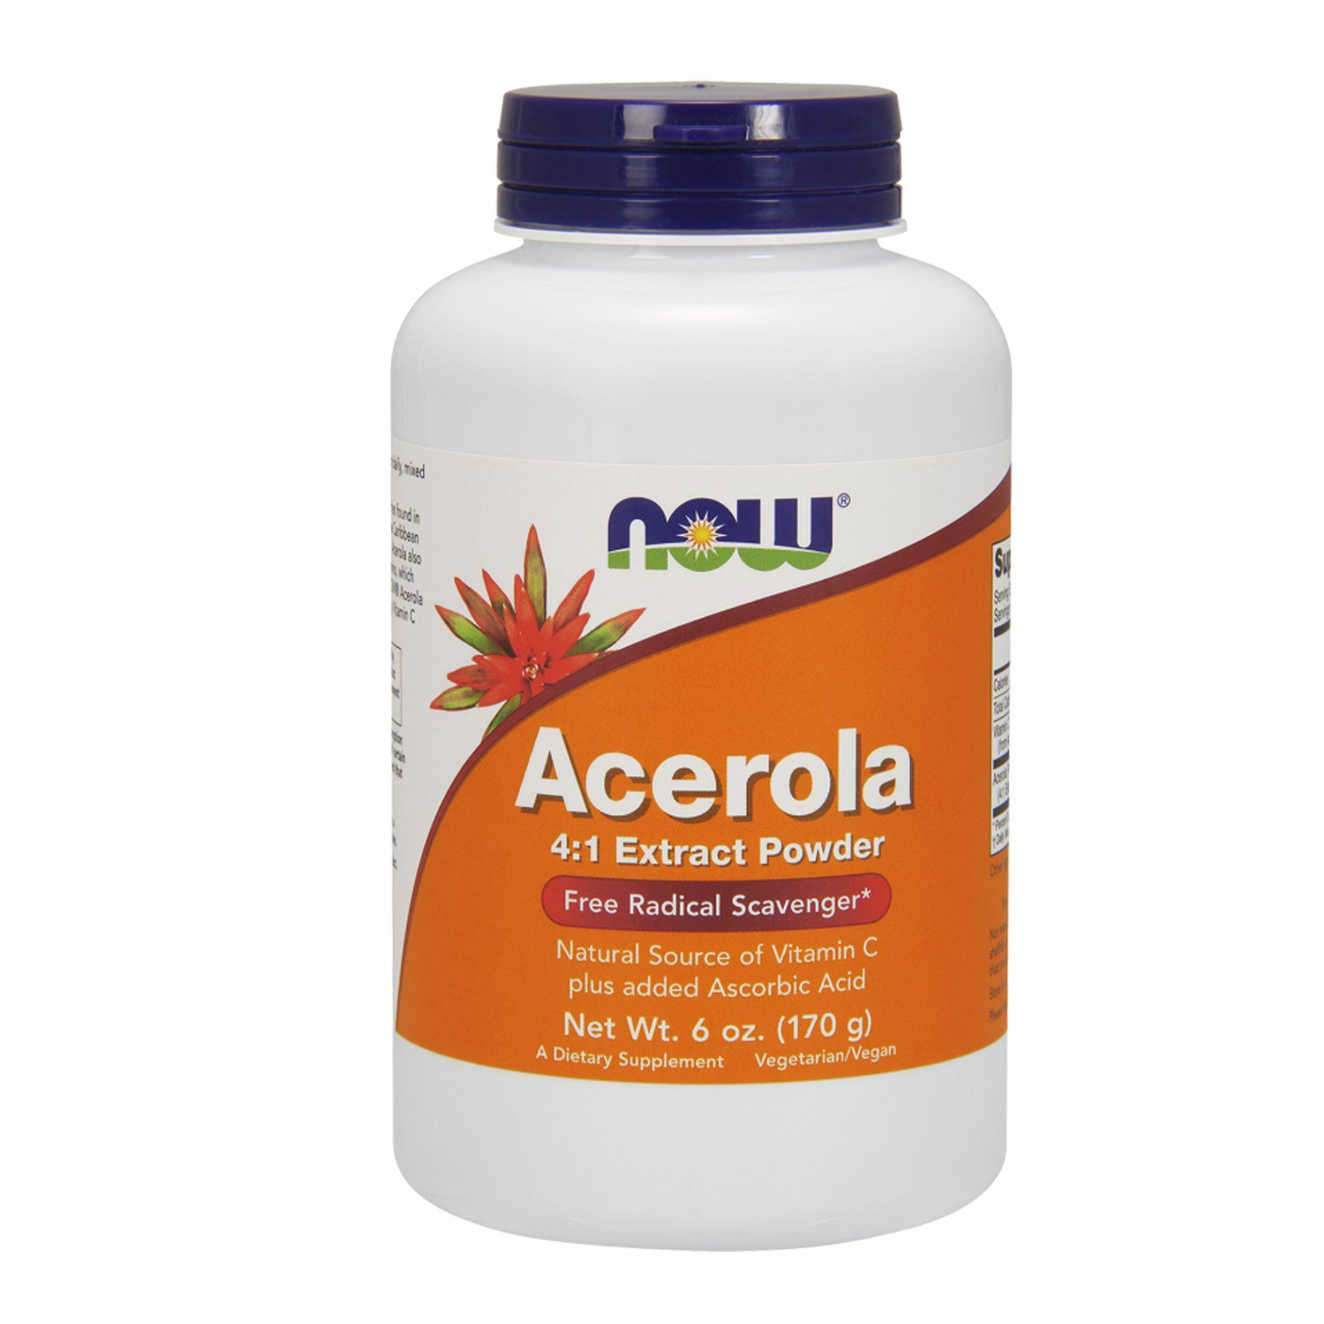 ACEROLA 4:1 EXTRACT POWDER - 170g